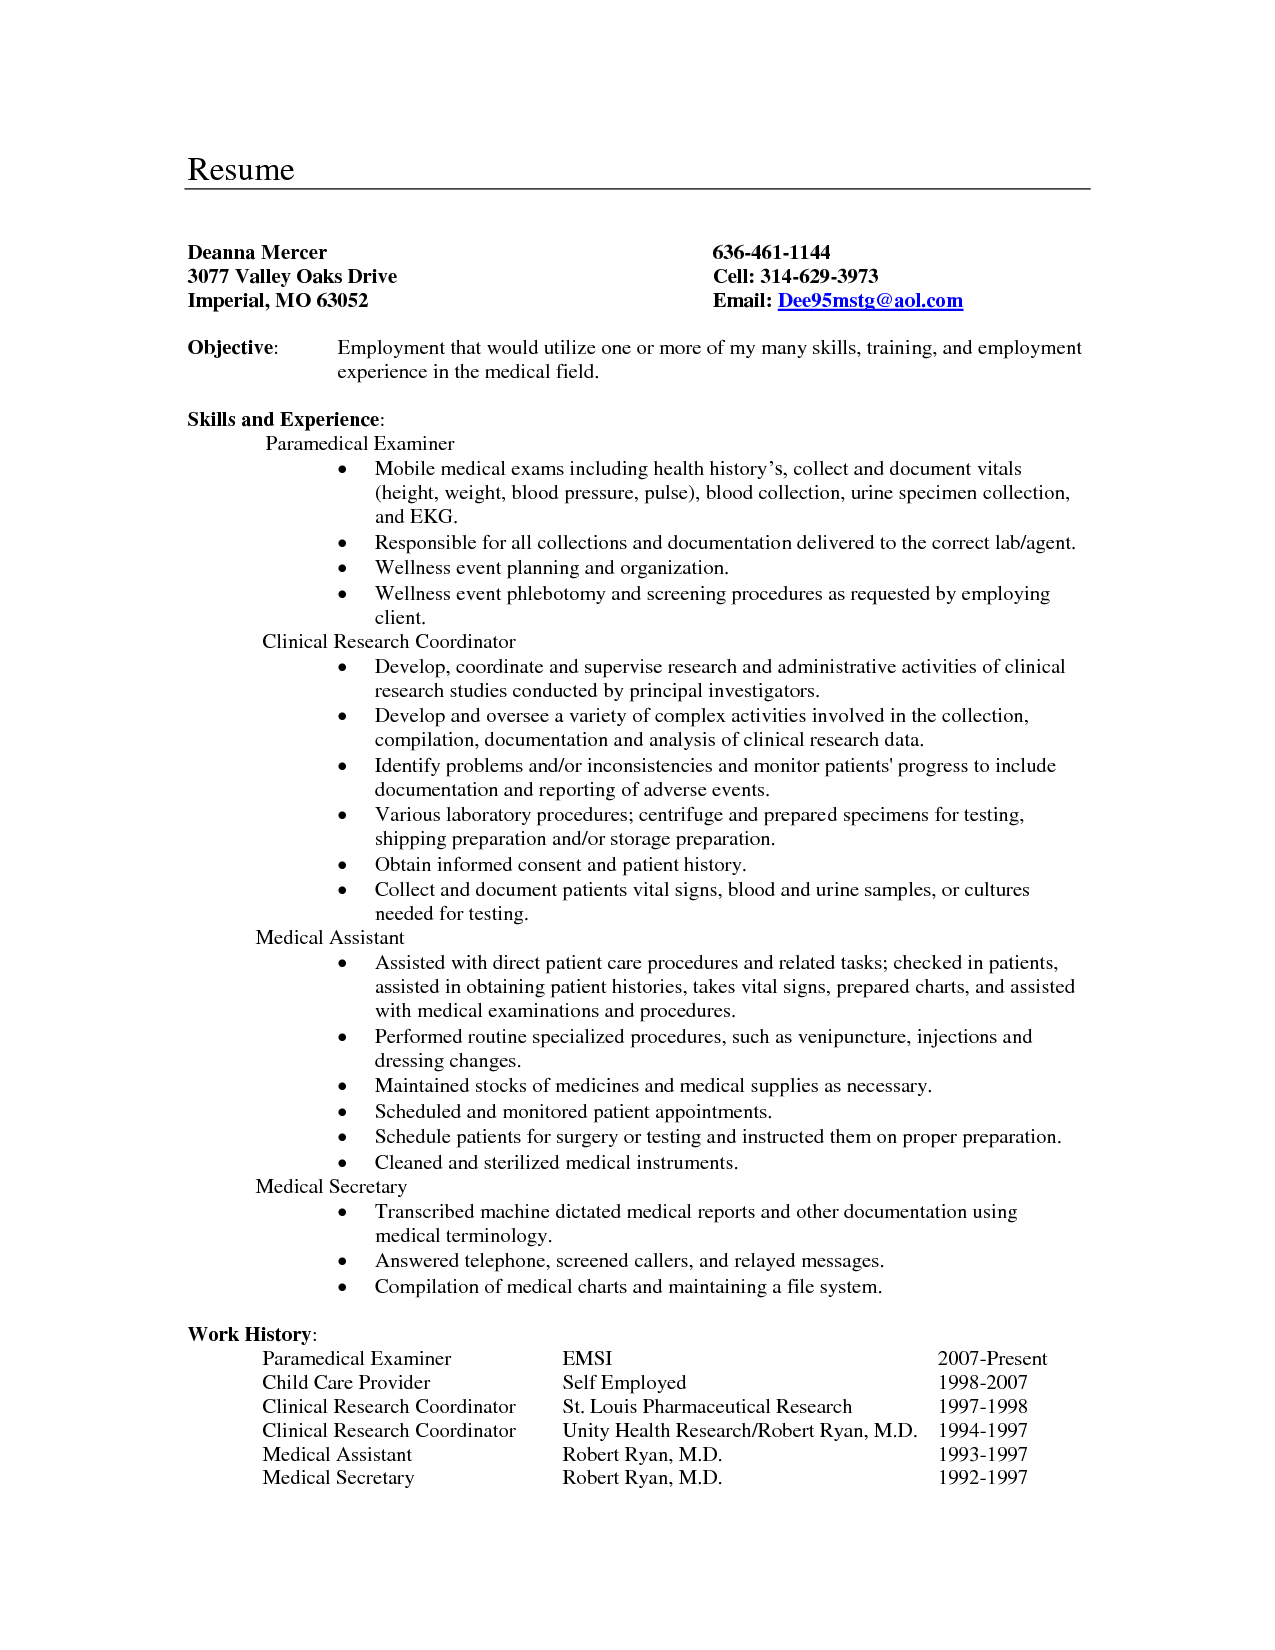 sample resume with objectives how to write a career objective on a resume resume genius 20 resume objective examples use them on your resume tips - Career Objective Statements For Resume